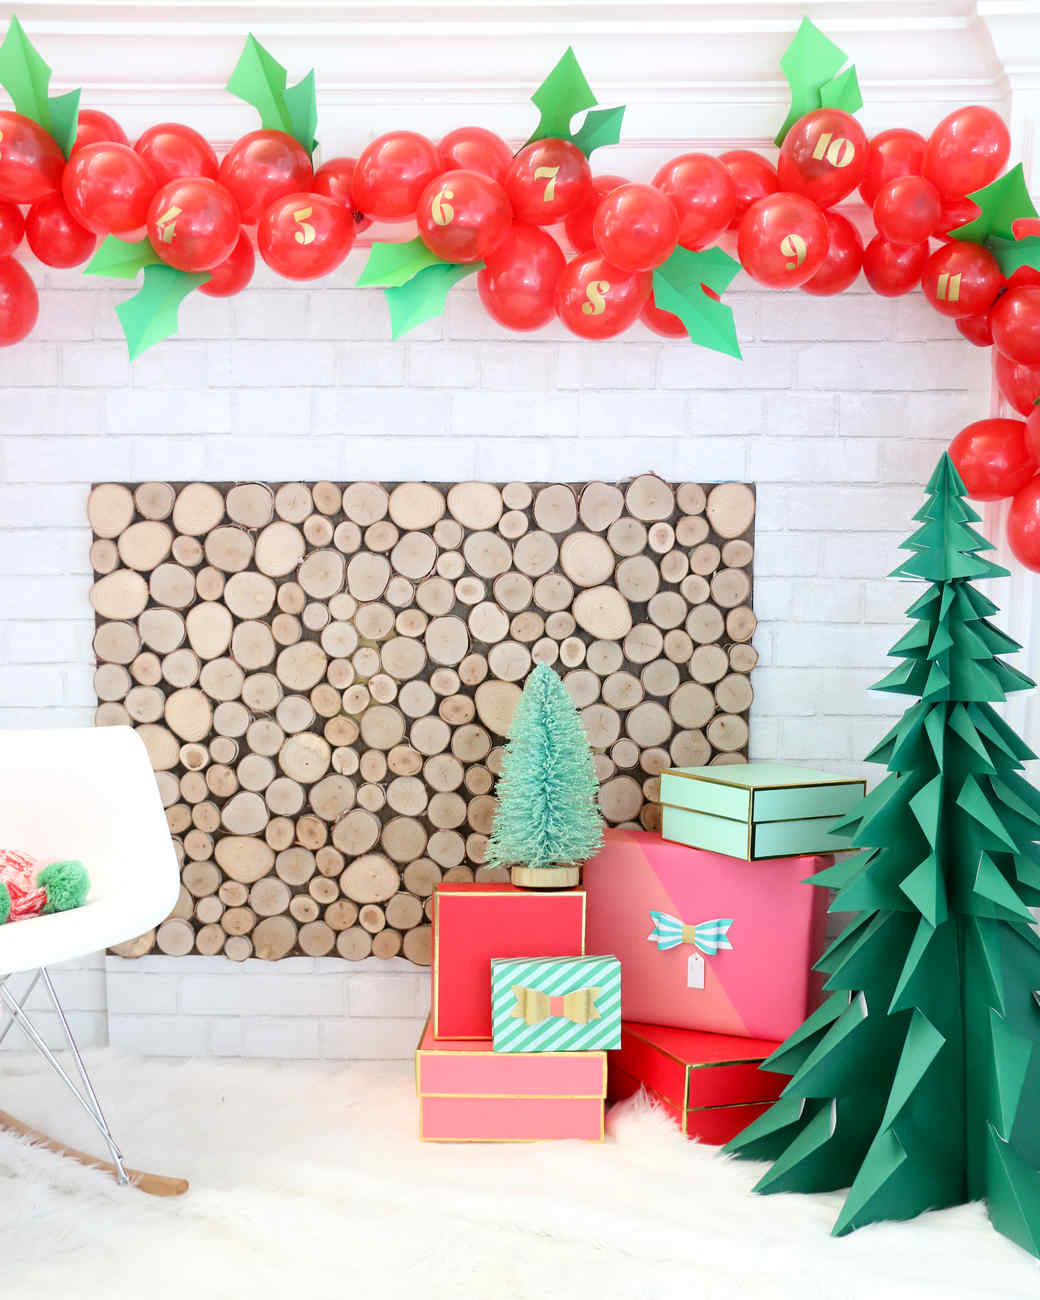 Ideas Christmas Party Part - 49: Holly Balloons For Christmas